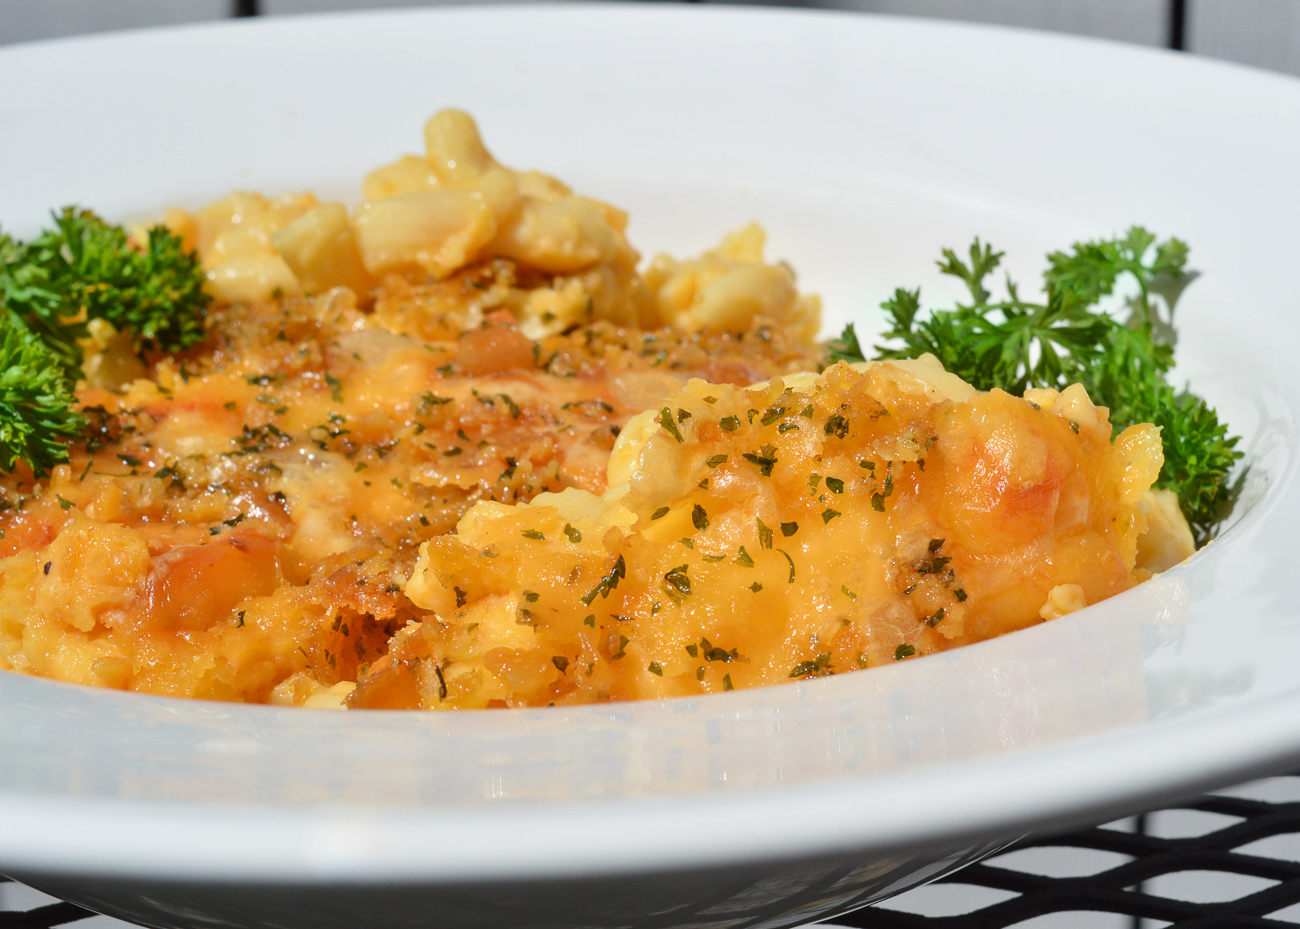 Mac n' cheese{ }/ Image: Scott Dittgen // Published: 10.8.20